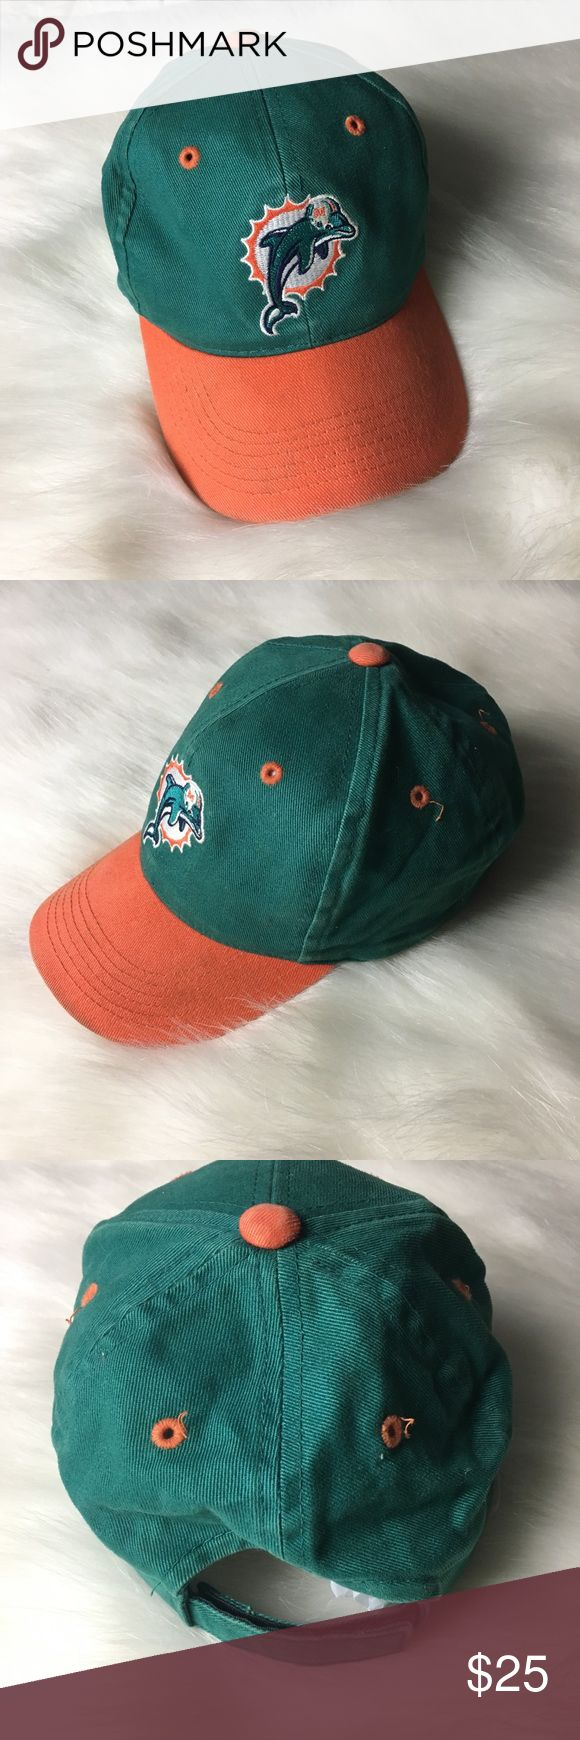 Vintage Miami Dolphins Hat Youth size hat. Vintage with old Dolphins logo. Some writing on tag. A little vintage wear. nfl Accessories Hats